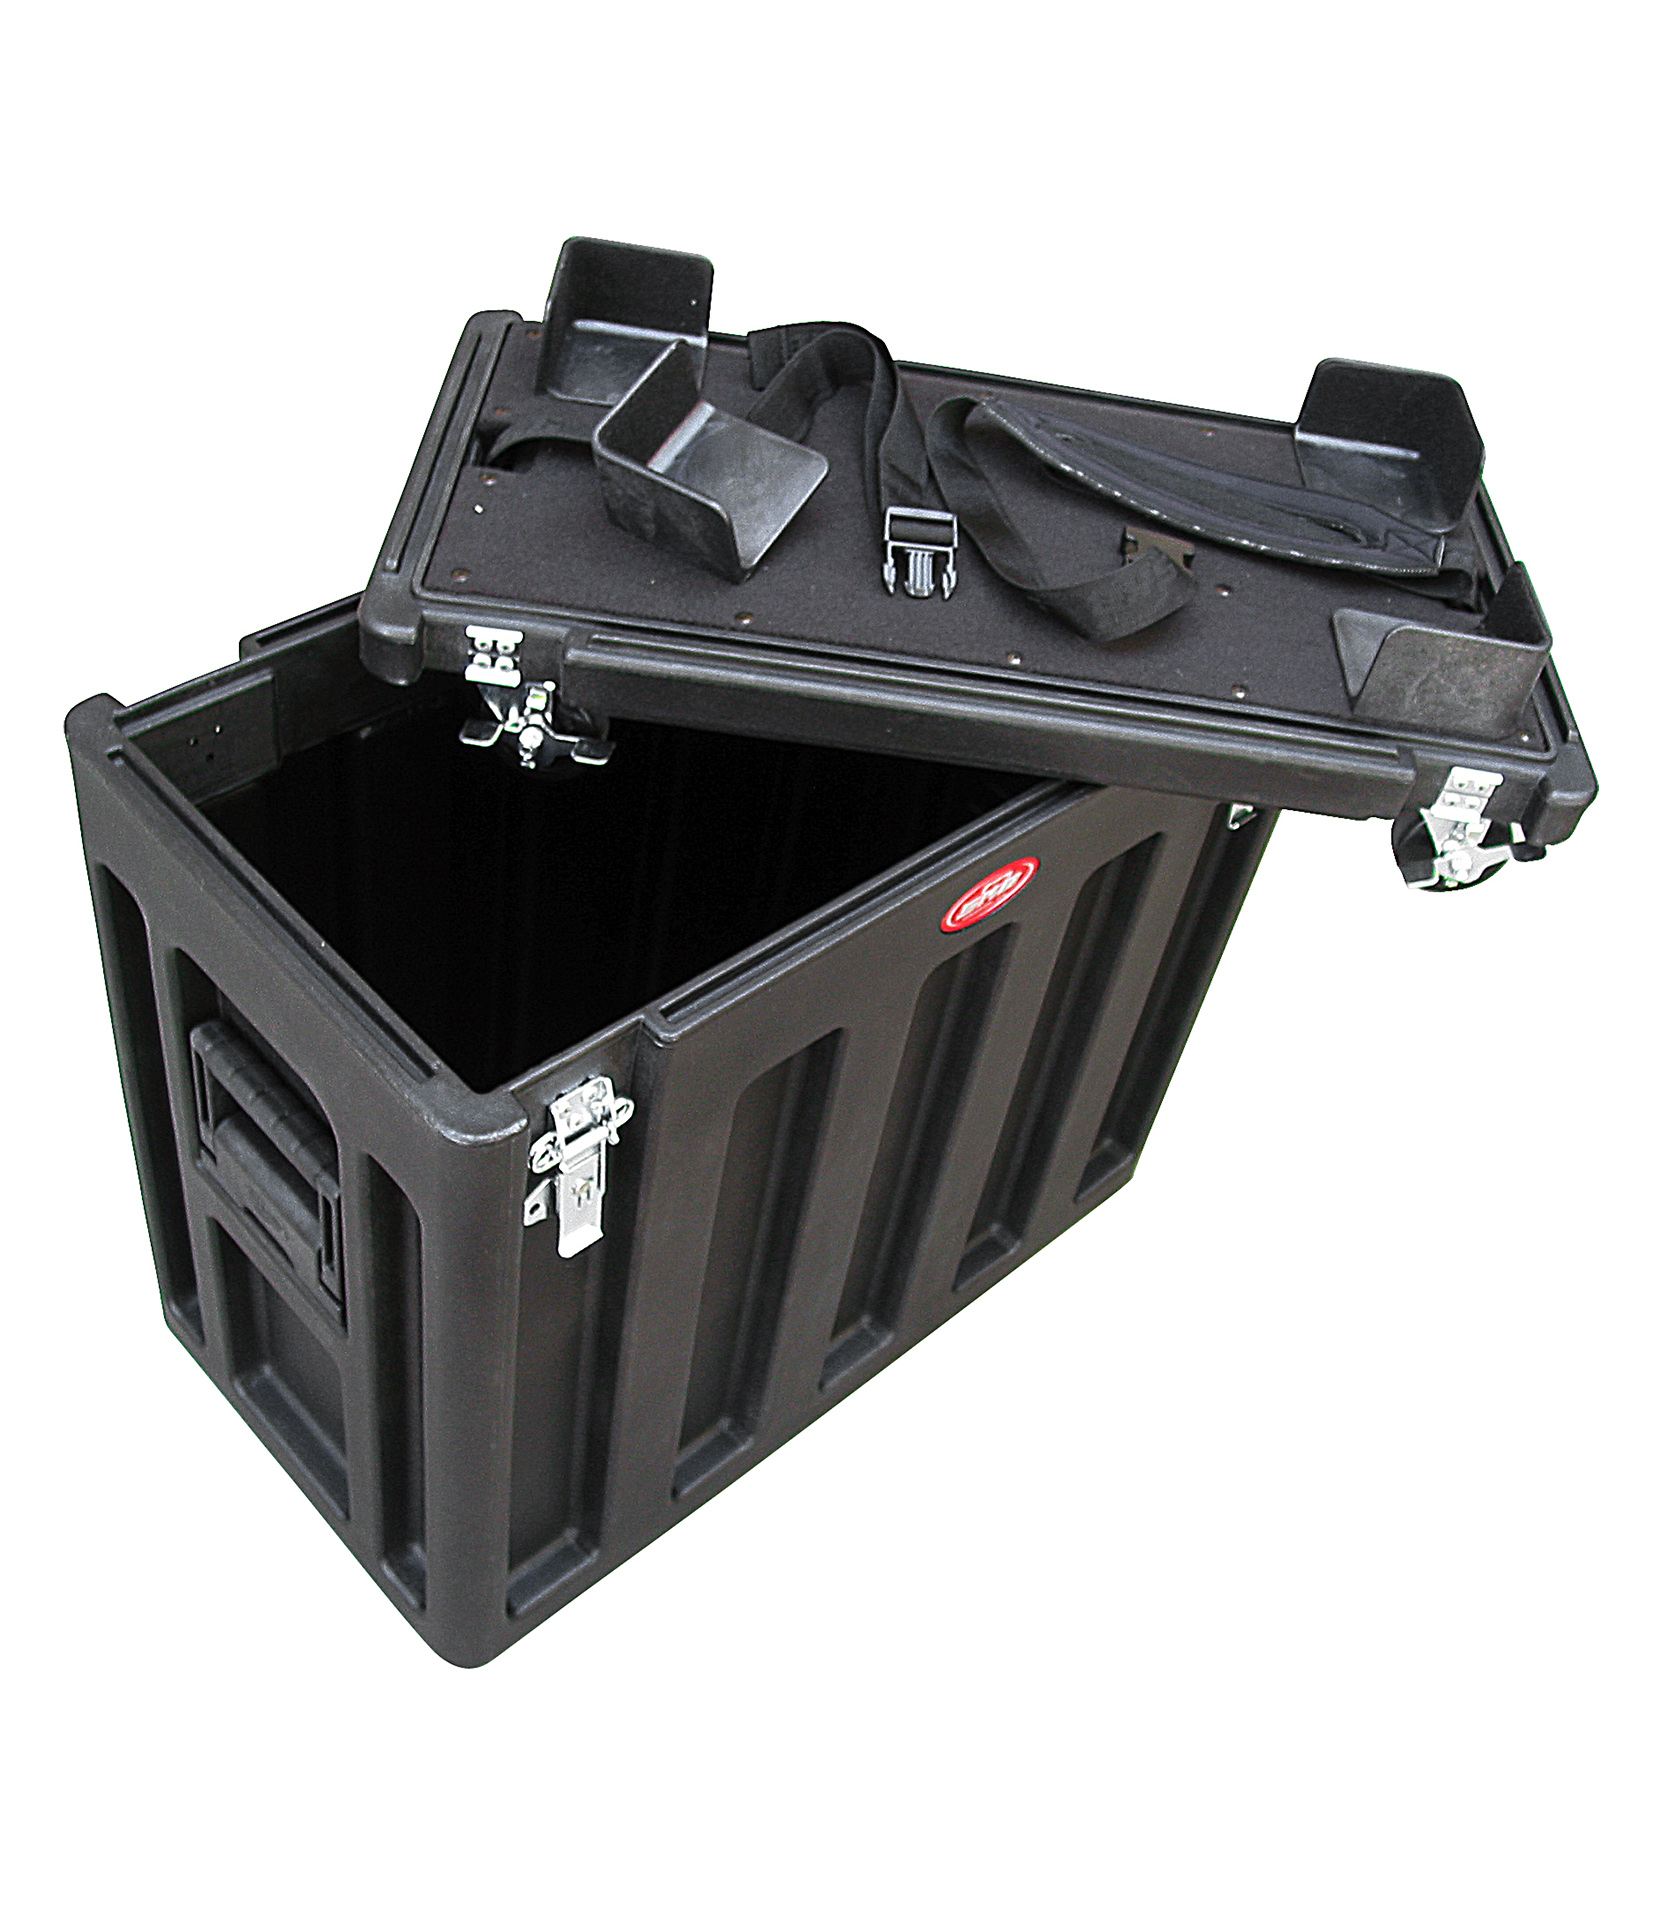 Melody House Musical Instruments Store - 1SKB R112AUV Fits 1x12 guitar amp cabinets Doubl